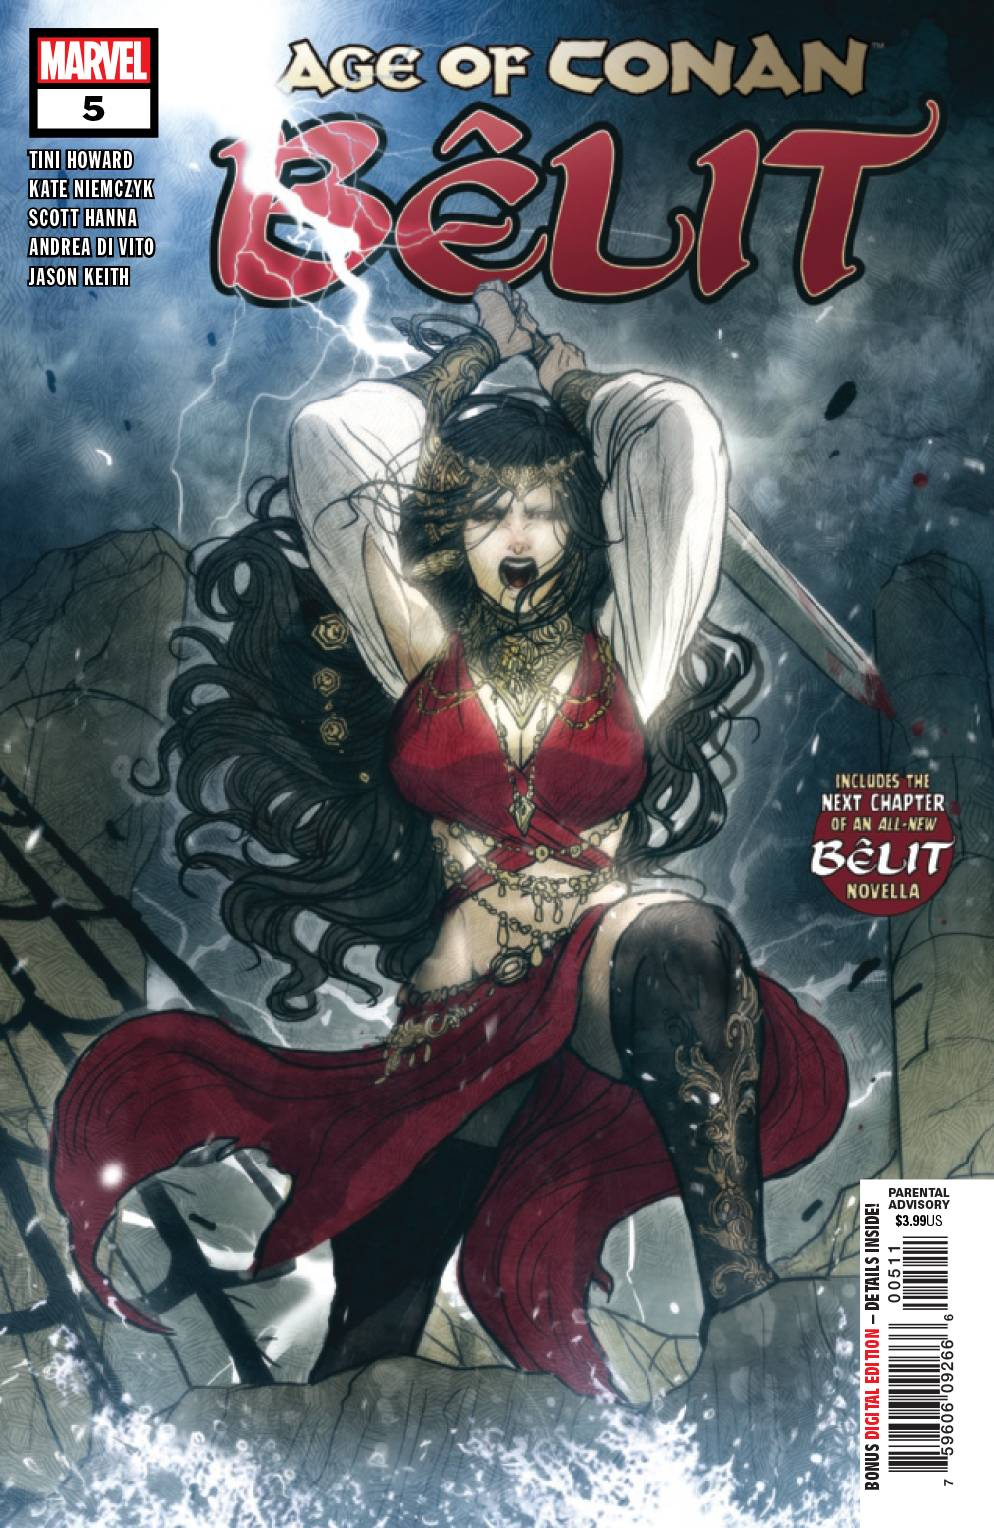 AGE OF CONAN: BELIT (MS 5)